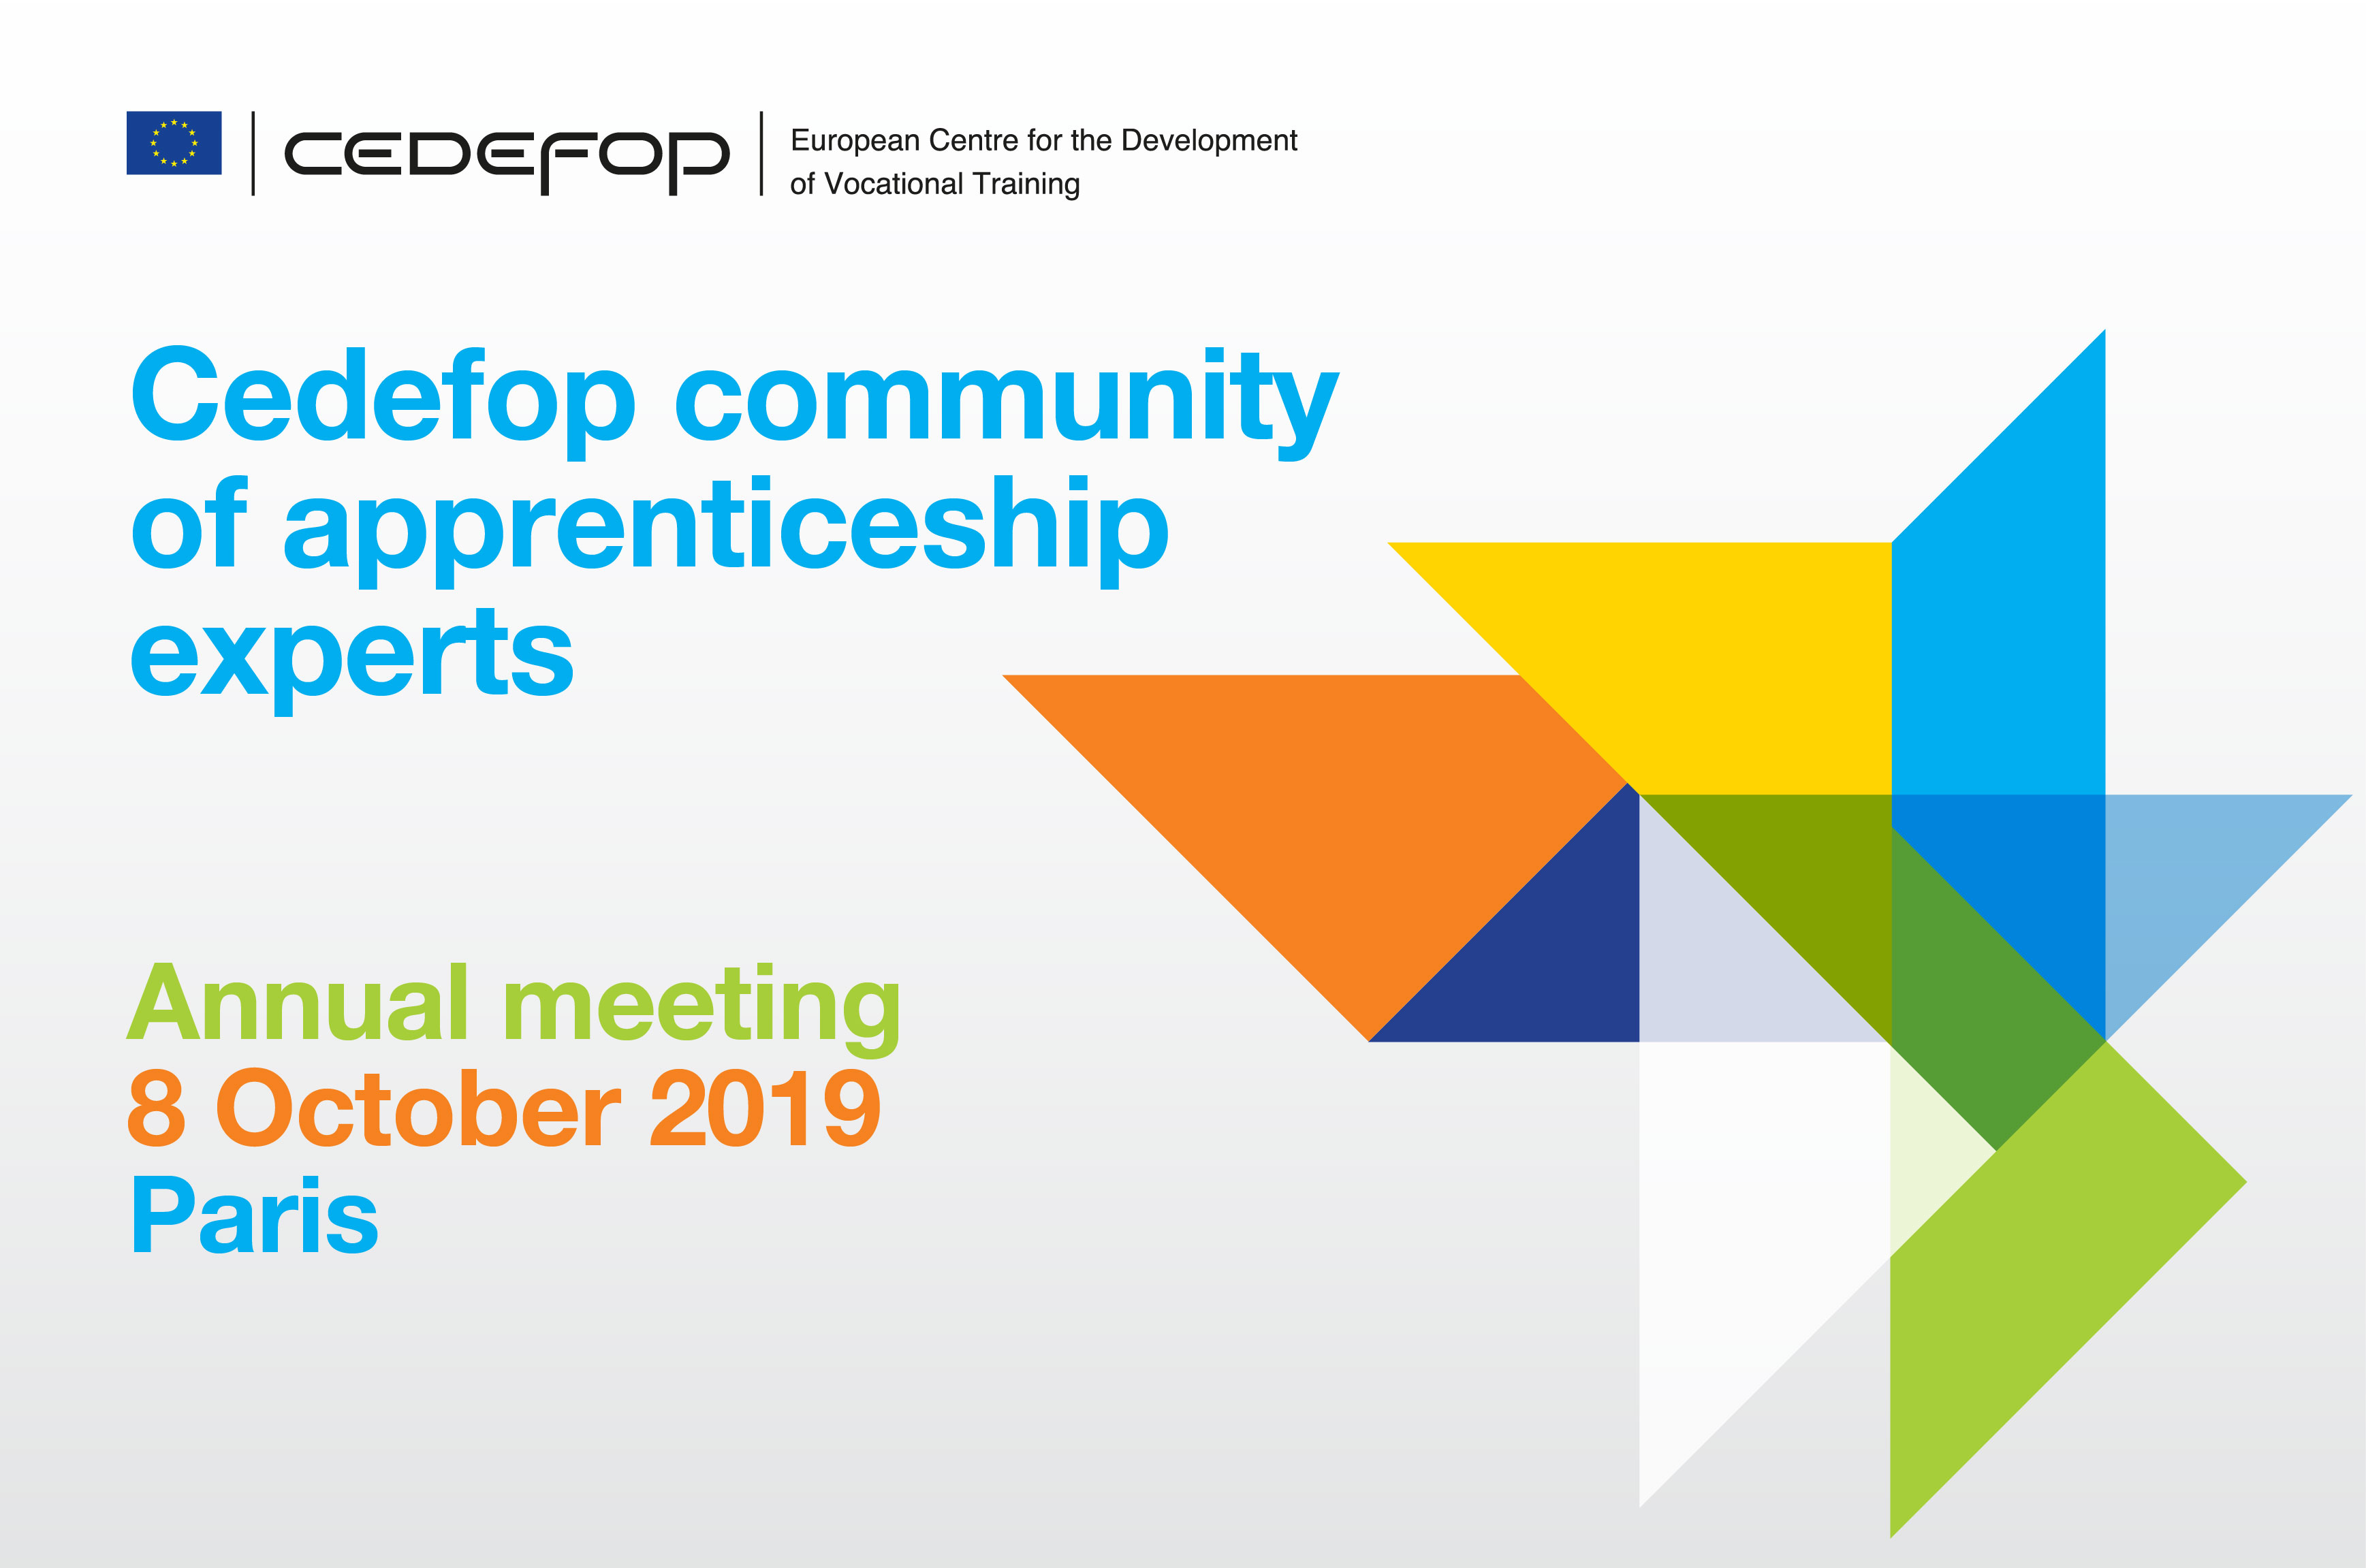 https://www.cedefop.europa.eu/files/images/2019_meeting_cedefop_community_of_apprenticeship_experts.jpg